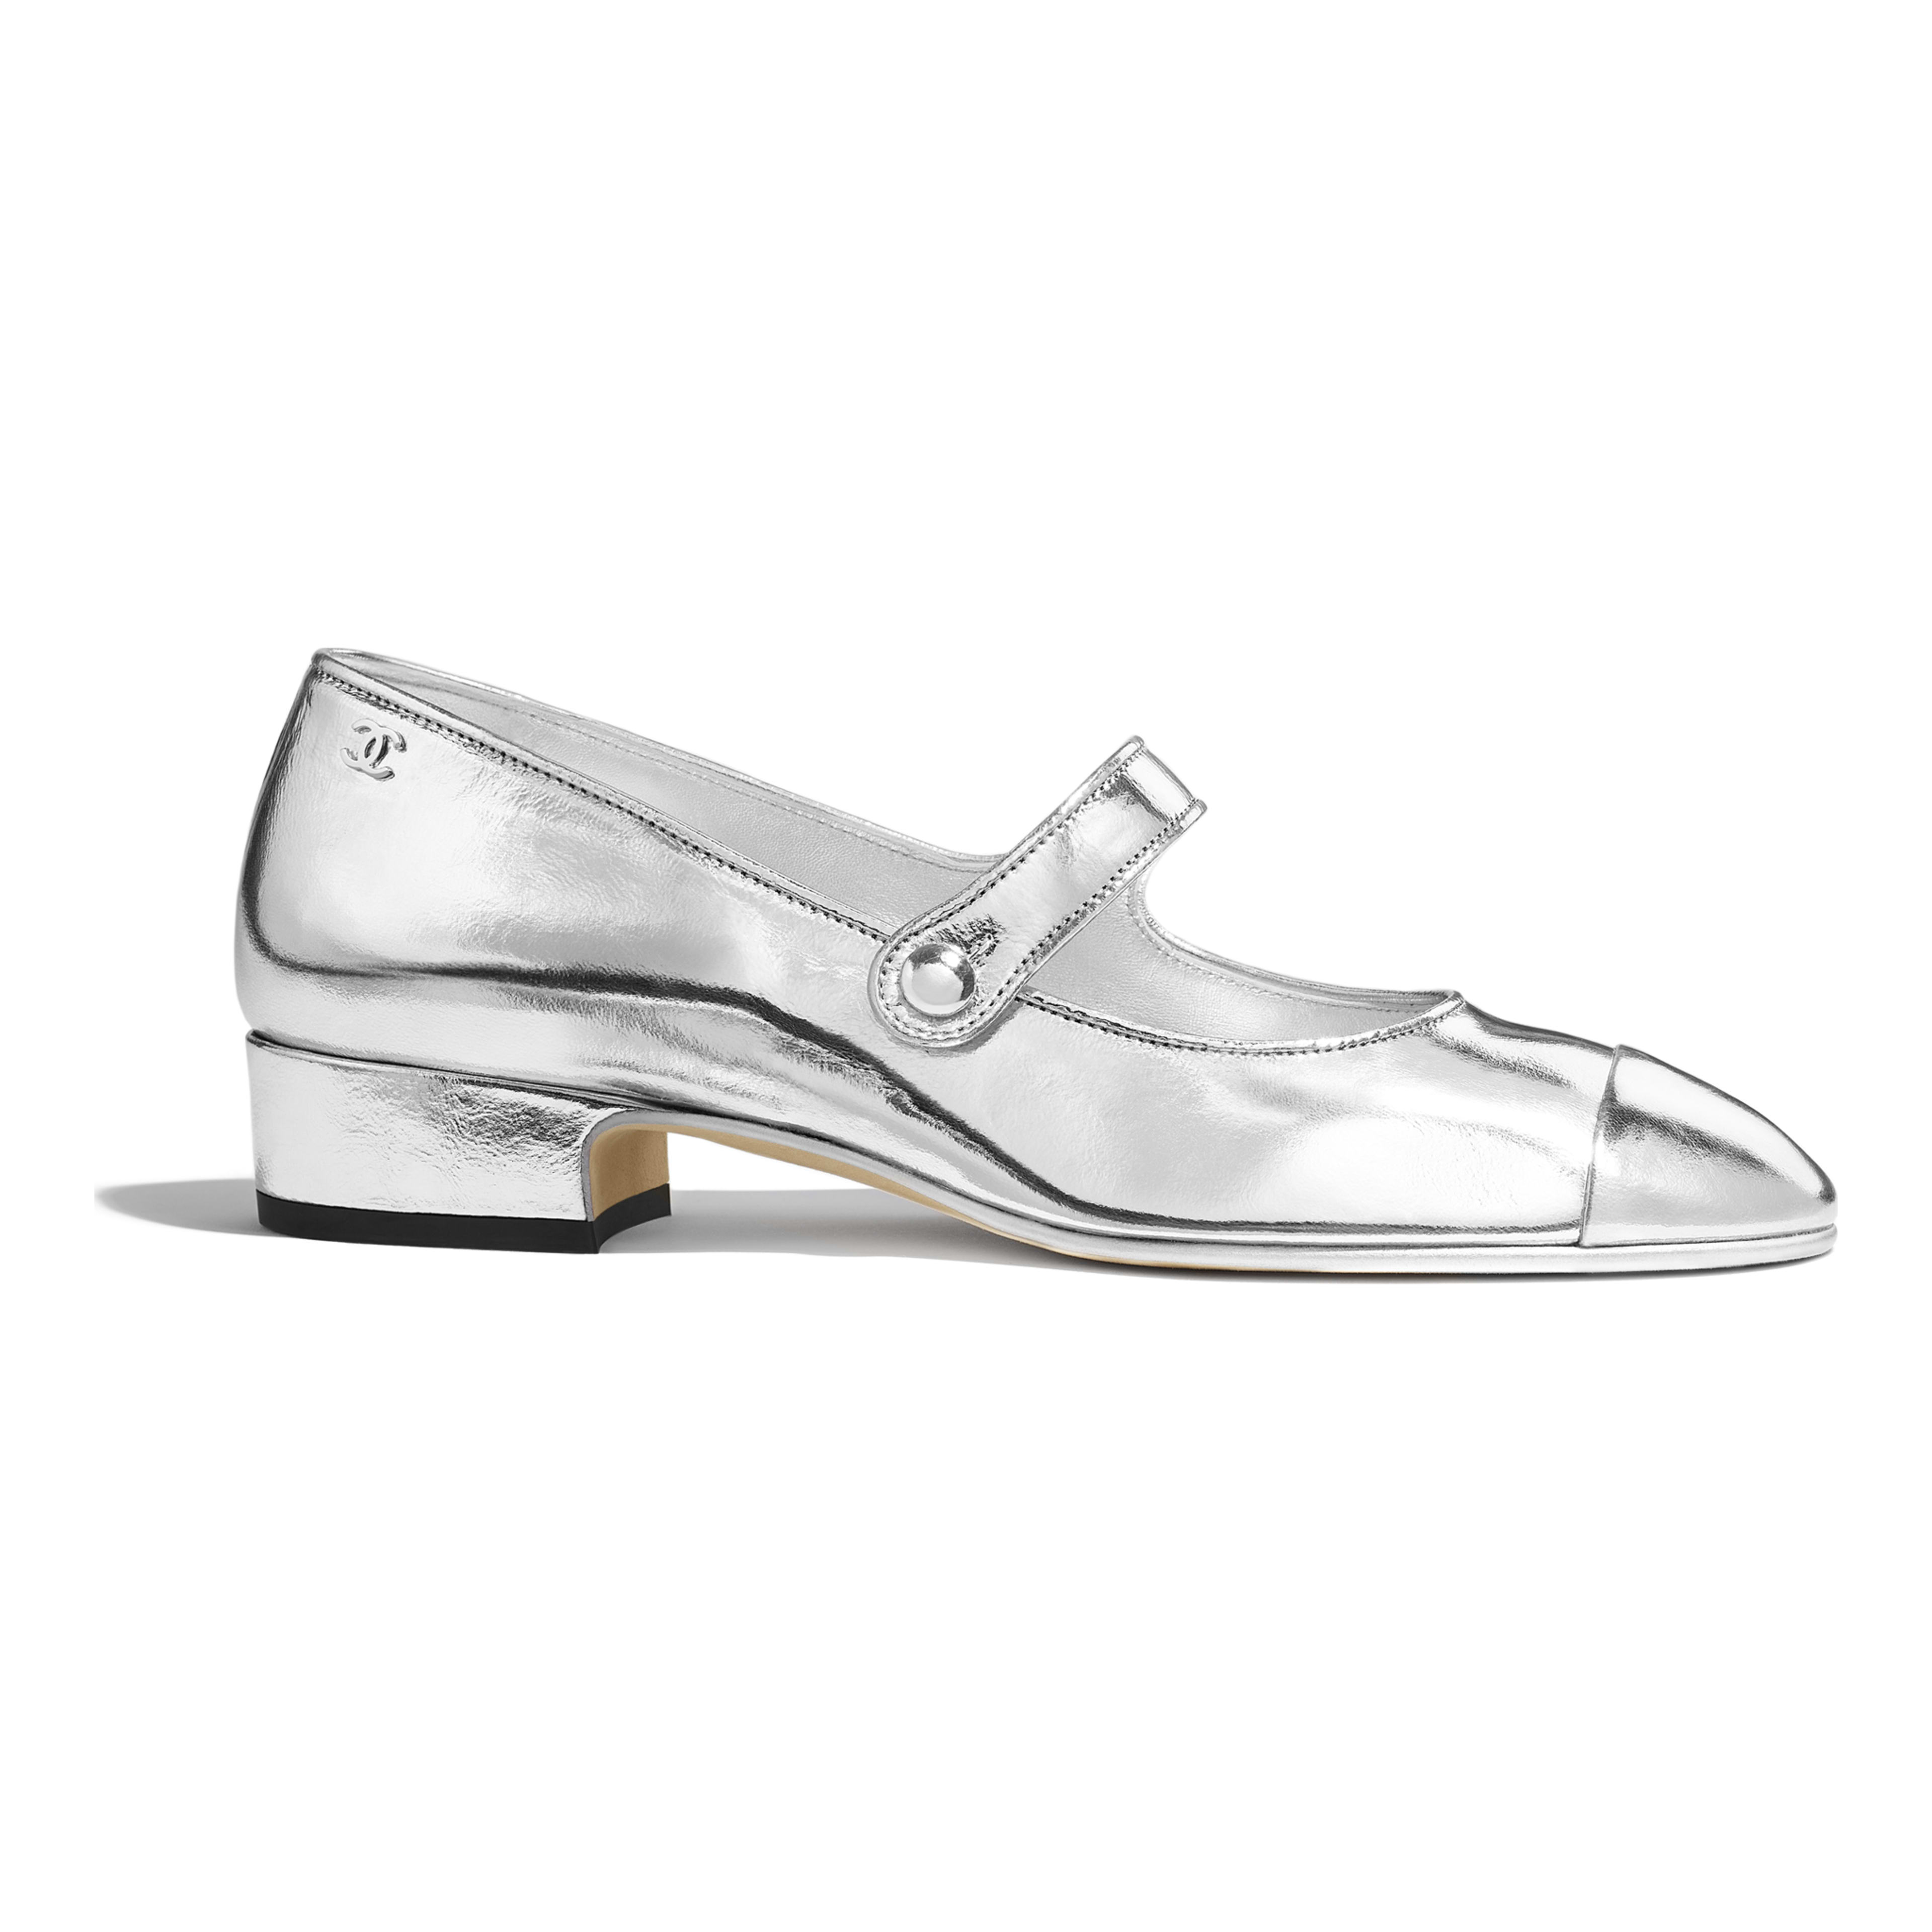 ccc68524c507 Laminated Goatskin Silver Mary Janes